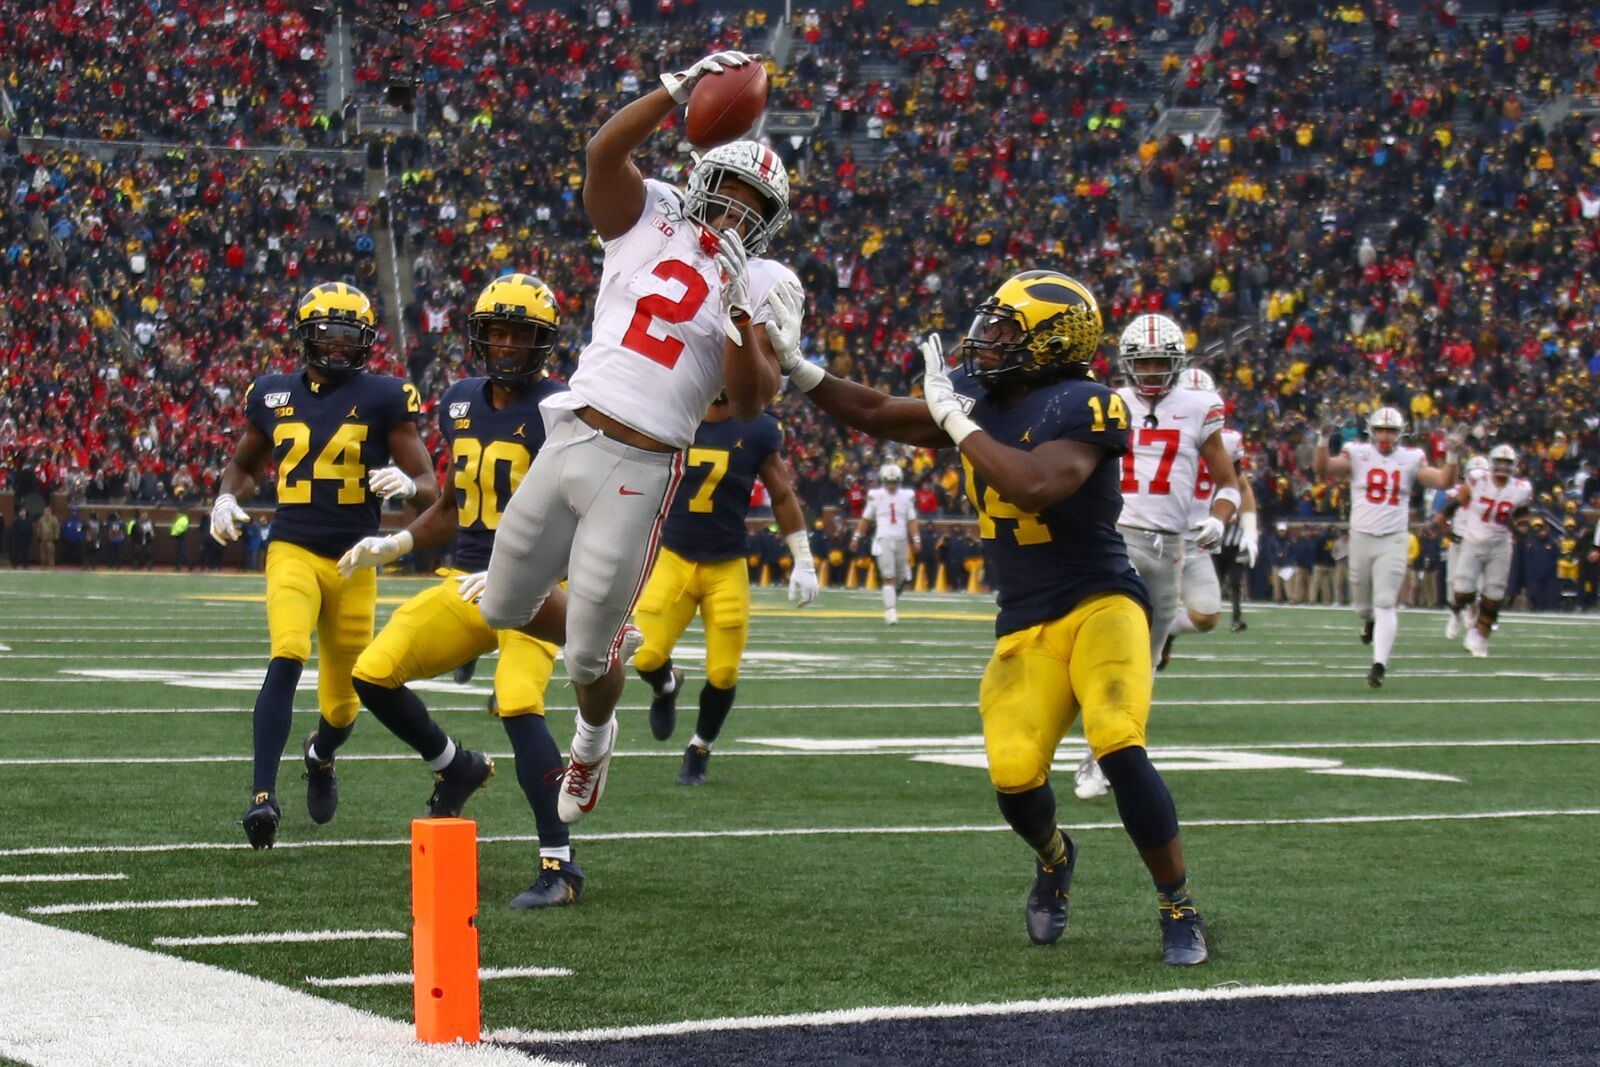 Ohio State Football: Buckeyes will make CFB history in Indy